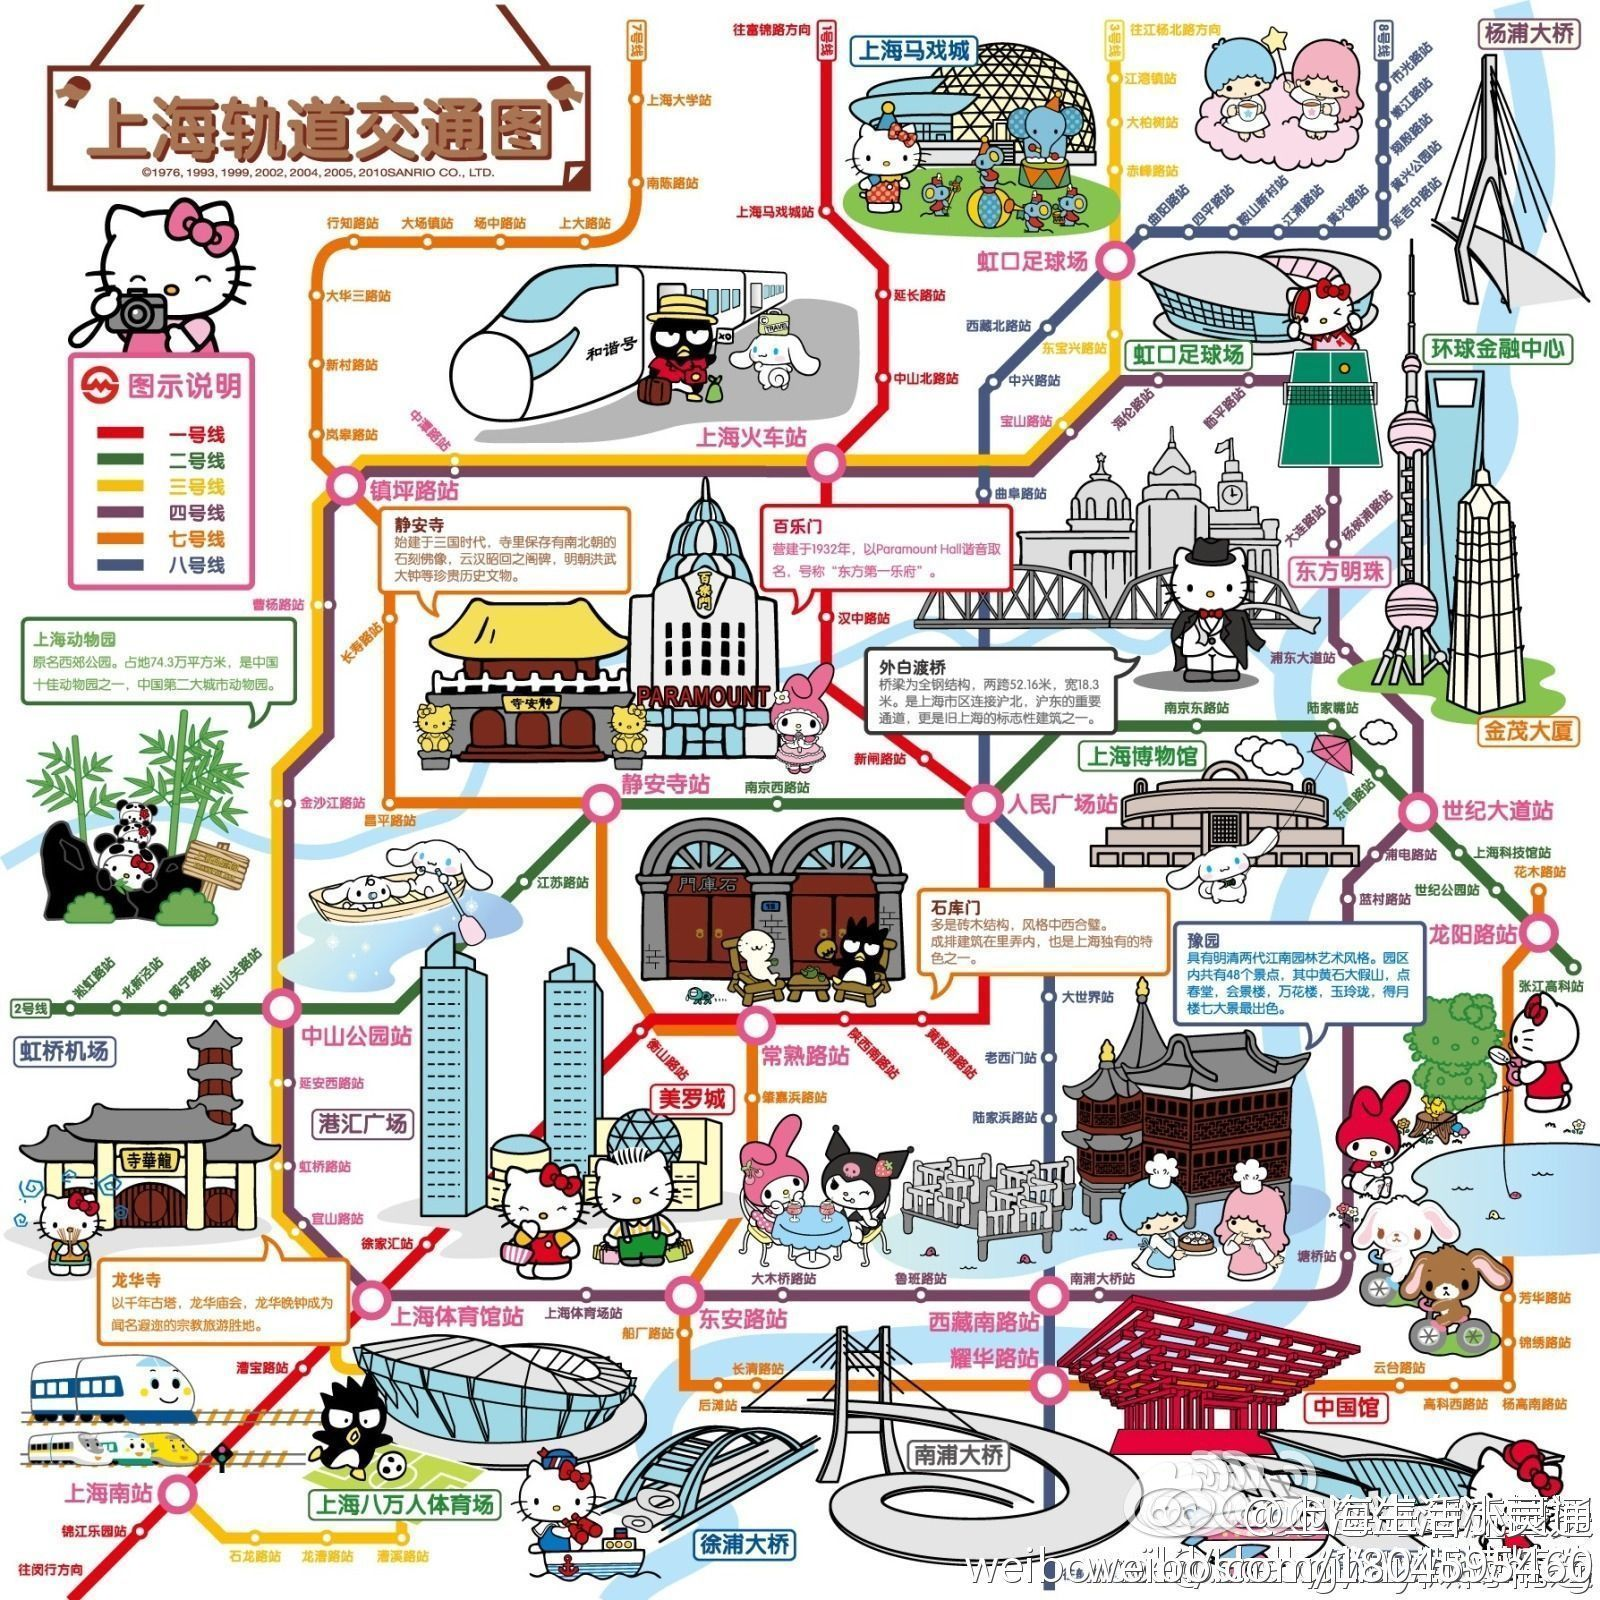 Subway Map Shanghai 2011.Hello Kitty Shanghai Metro Map So Cute Lol Sh Map In 2019